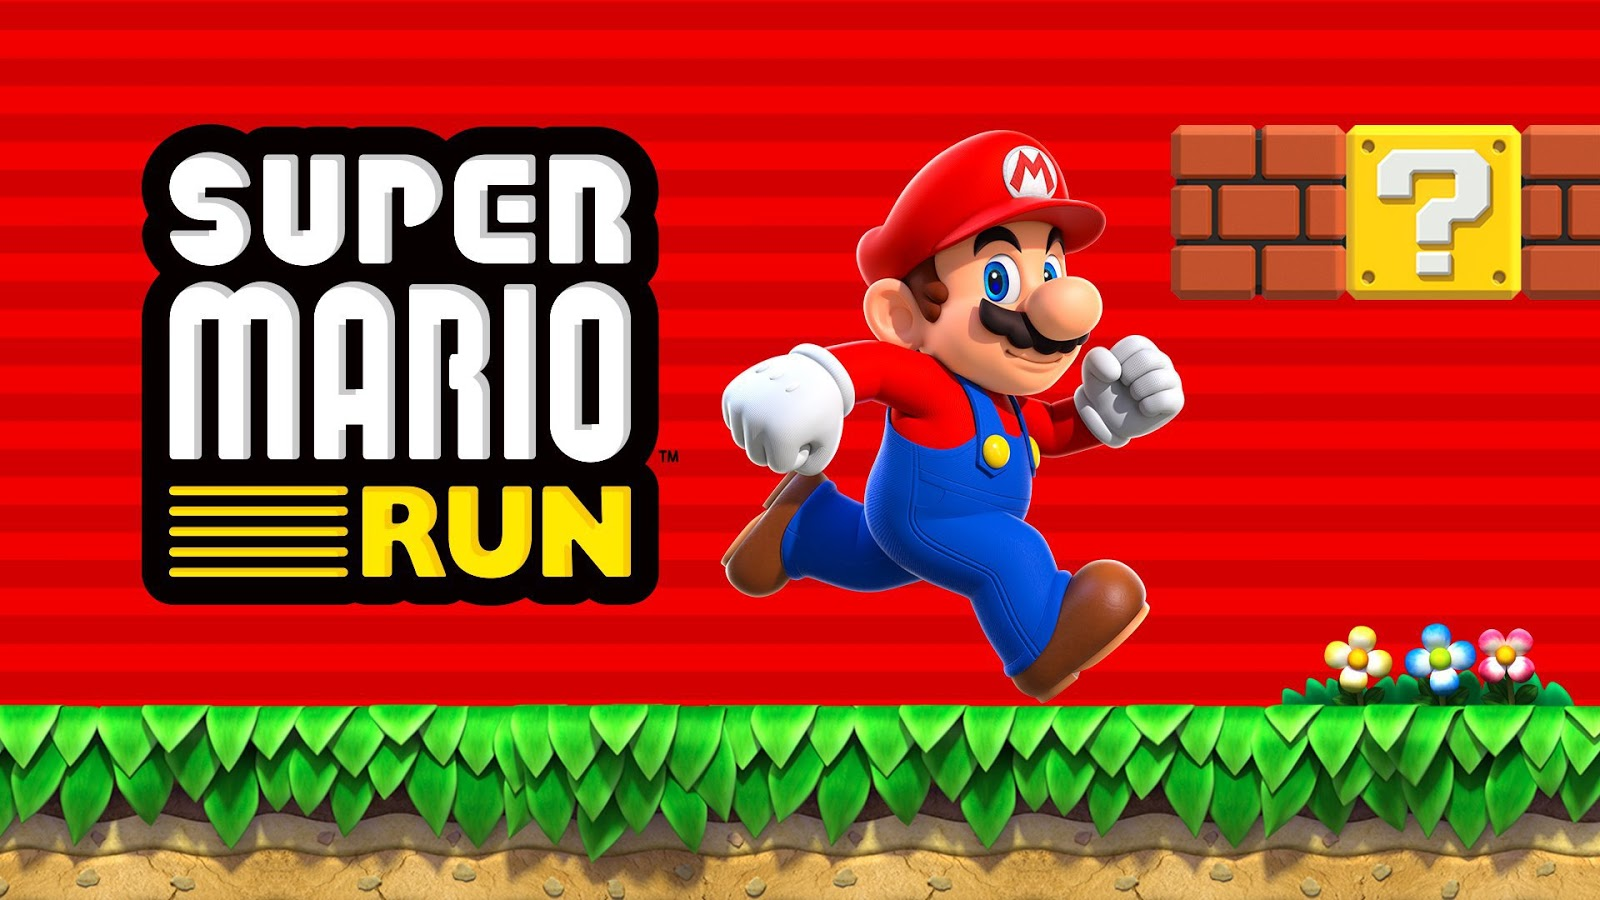 Ya se encuentra disponible Super Mario Run para la plataforma móvil Ios.